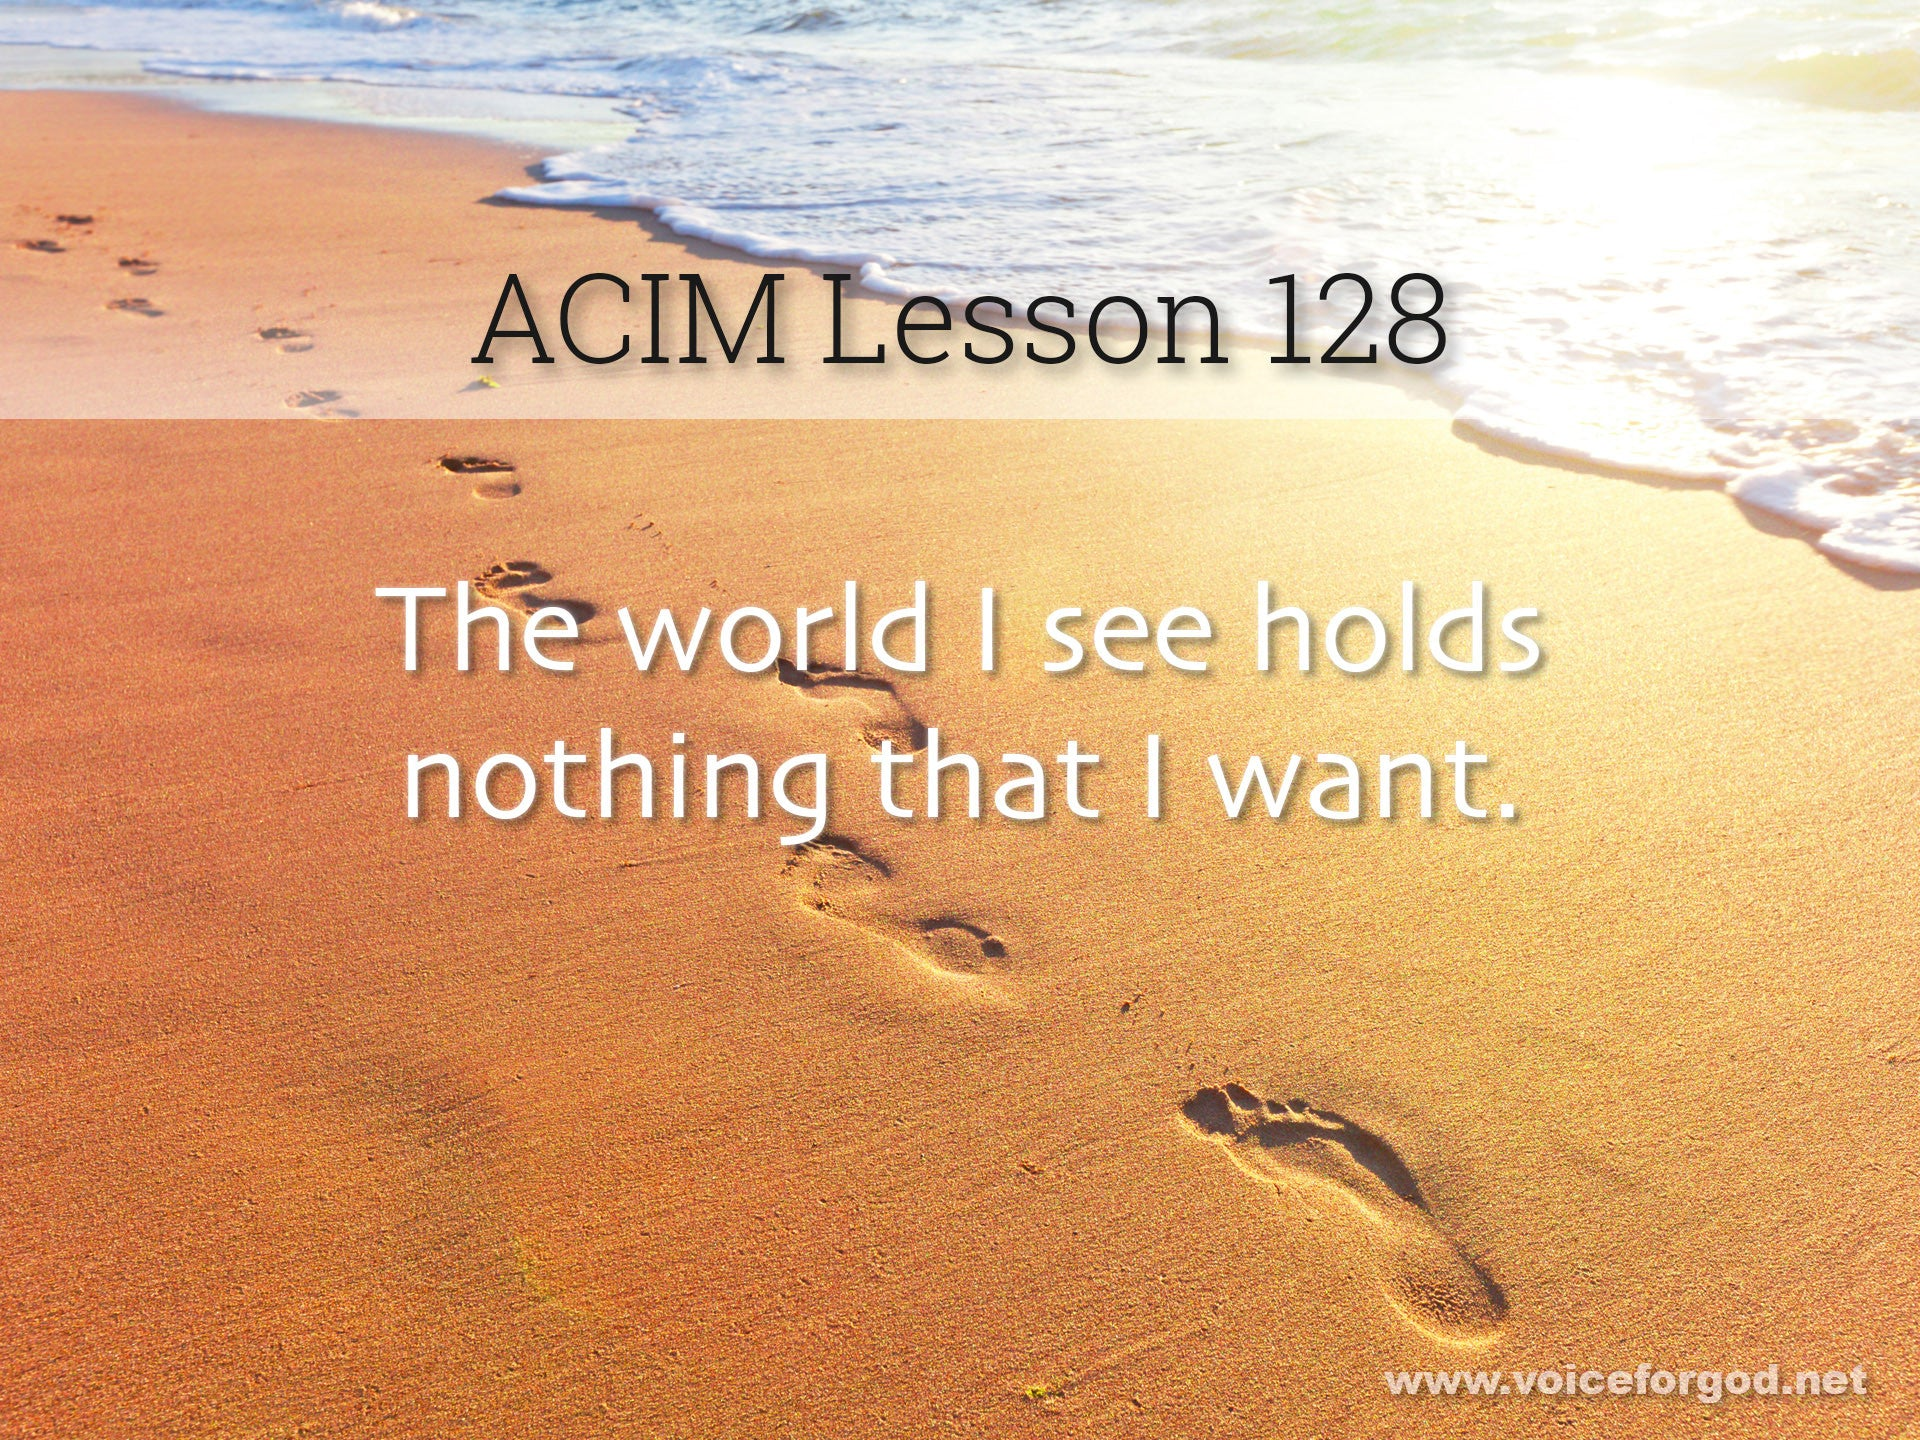 ACIM Lesson 128 - A Course in Miracles Workbook Lesson 128